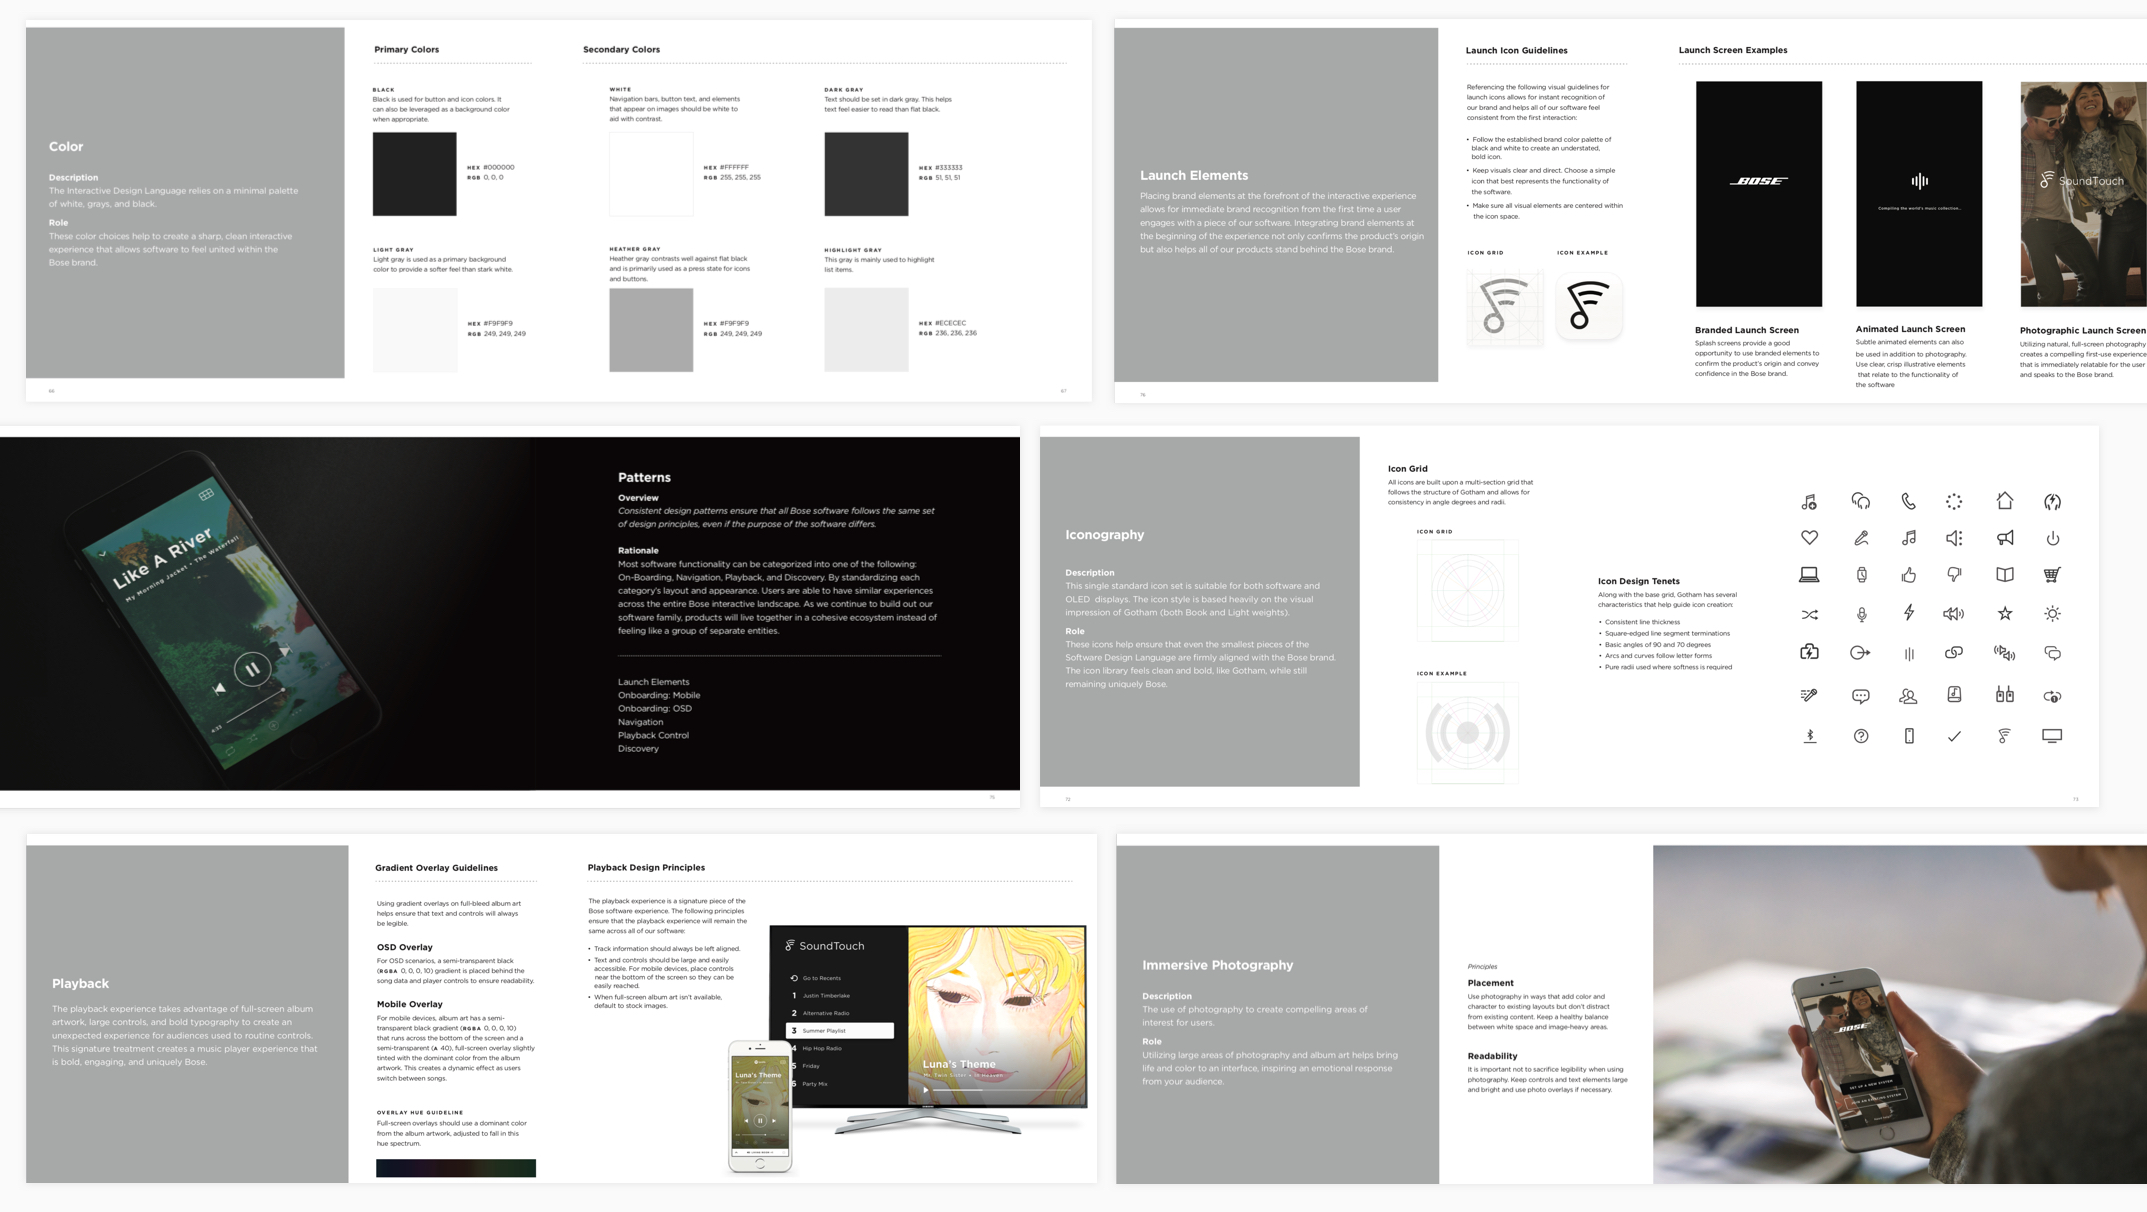 Excerpts from the visual design guidelines